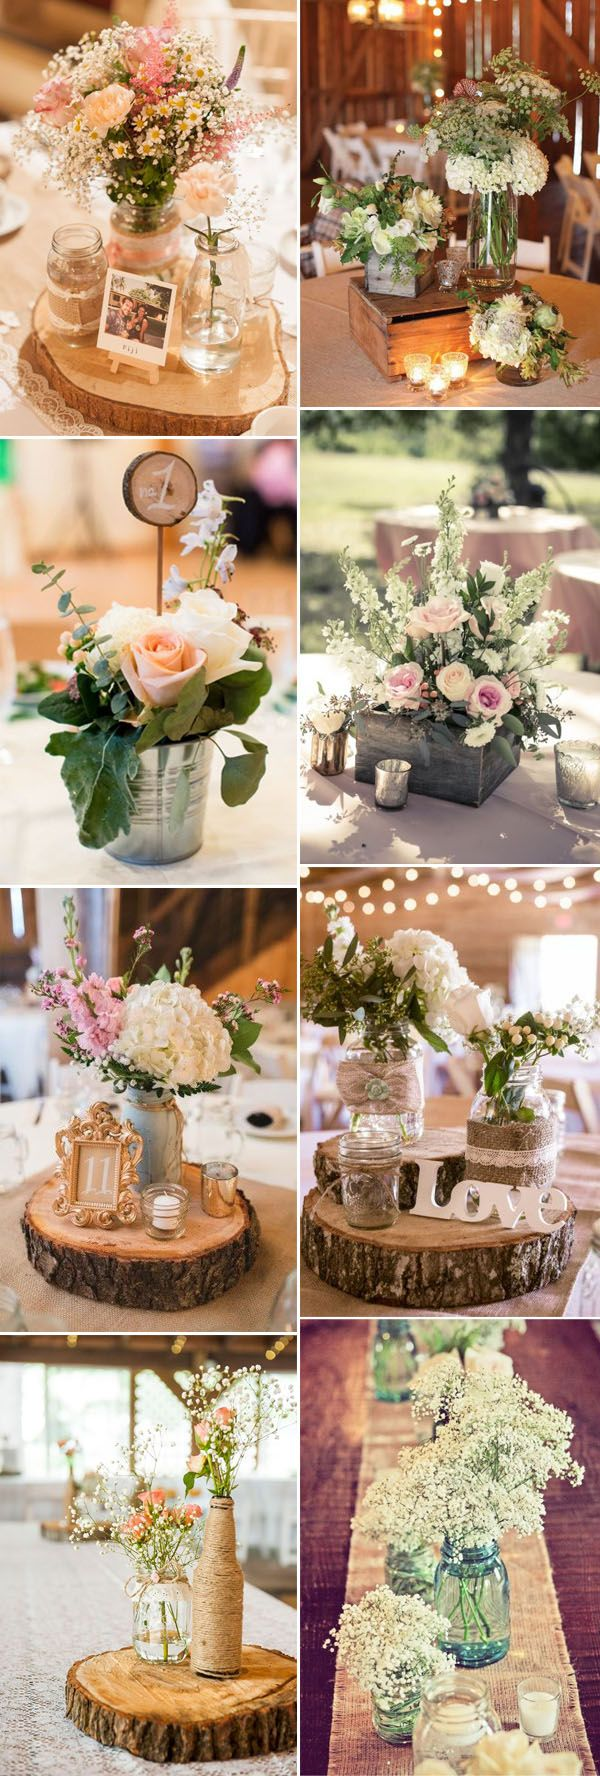 creative rustic wedding centerpieces ideas